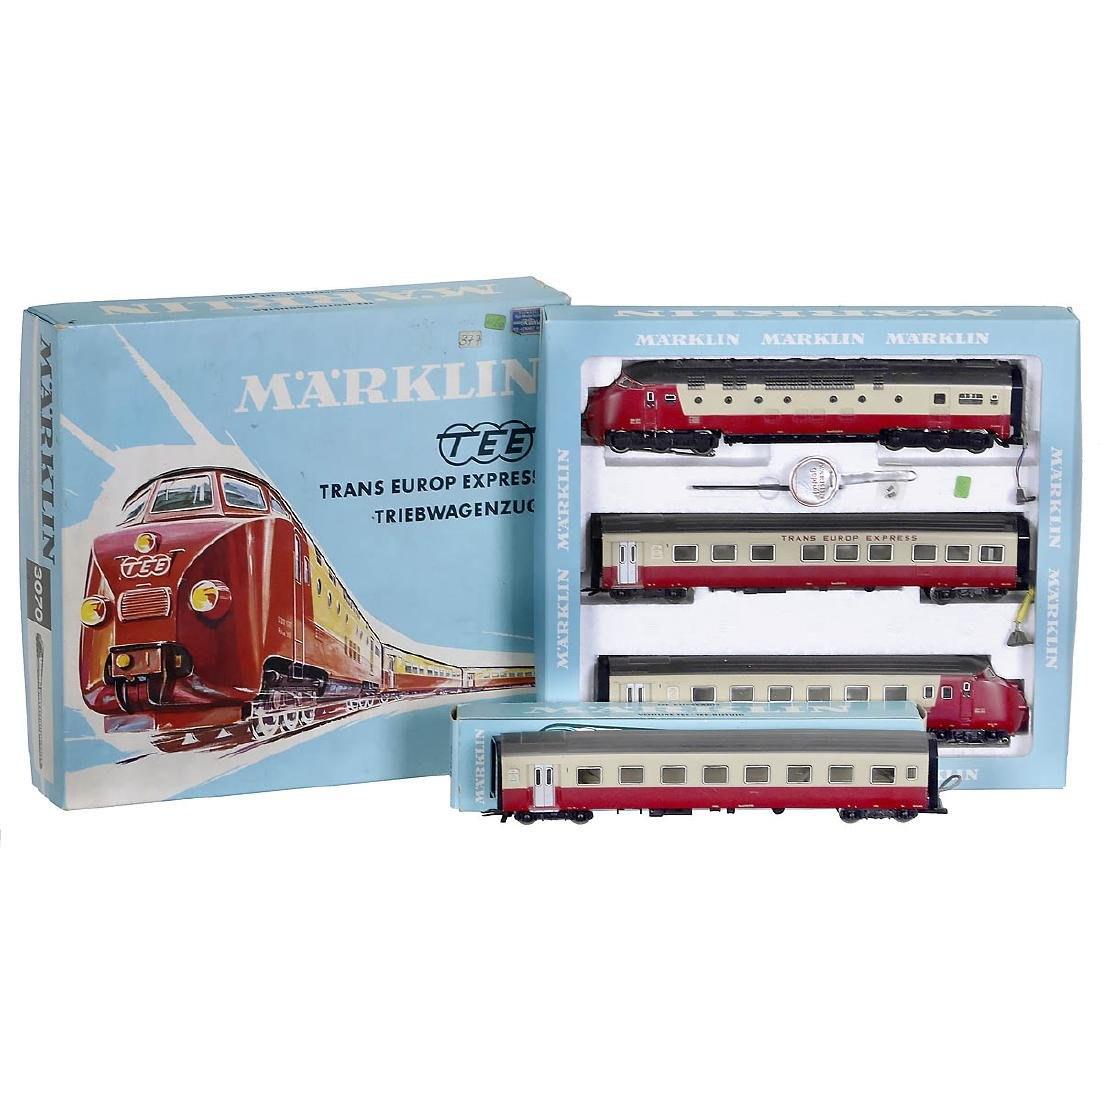 Märklin TEE Train 3070 with Compartment Car 4070, c. - 2